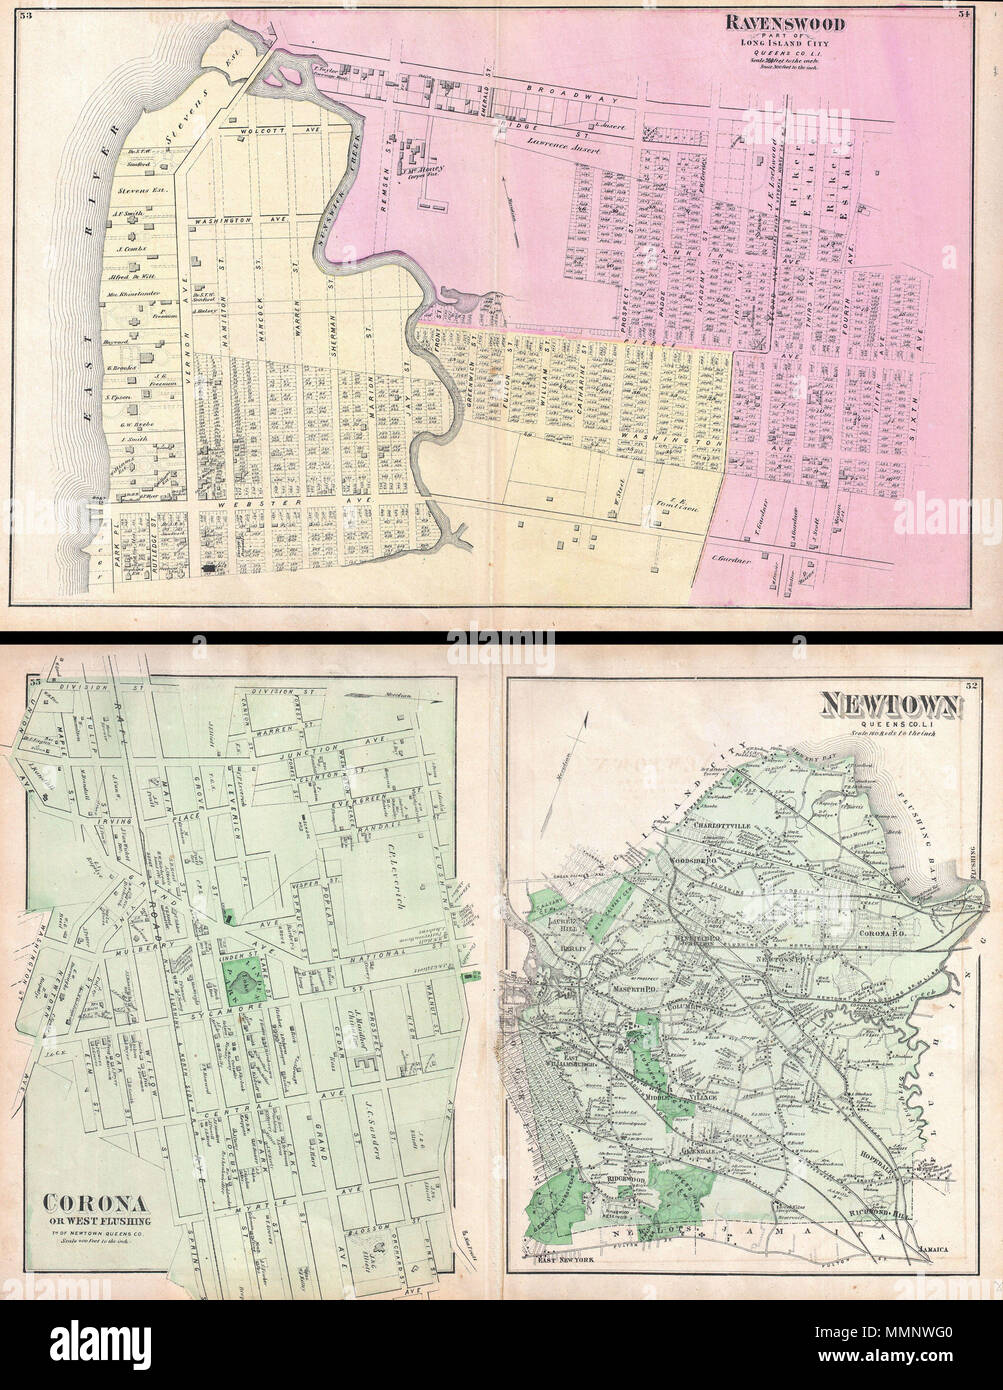 English: A scarce example of Fredrick W. Beers' two map set ... on nyc street map, manhattan bus map, east river ny map, western new york ny map, east river park map, east river park ny, northern boulevard flushing ny map, east river station, whitestone new york map, east river nyc map, ctaf frequency map, east river greenpoint map, long island city street map, east river running map, new york new jersey rivers map, east river bronx map, east river colorado map, east river bridges map, east river ferry map, east river manhattan map,